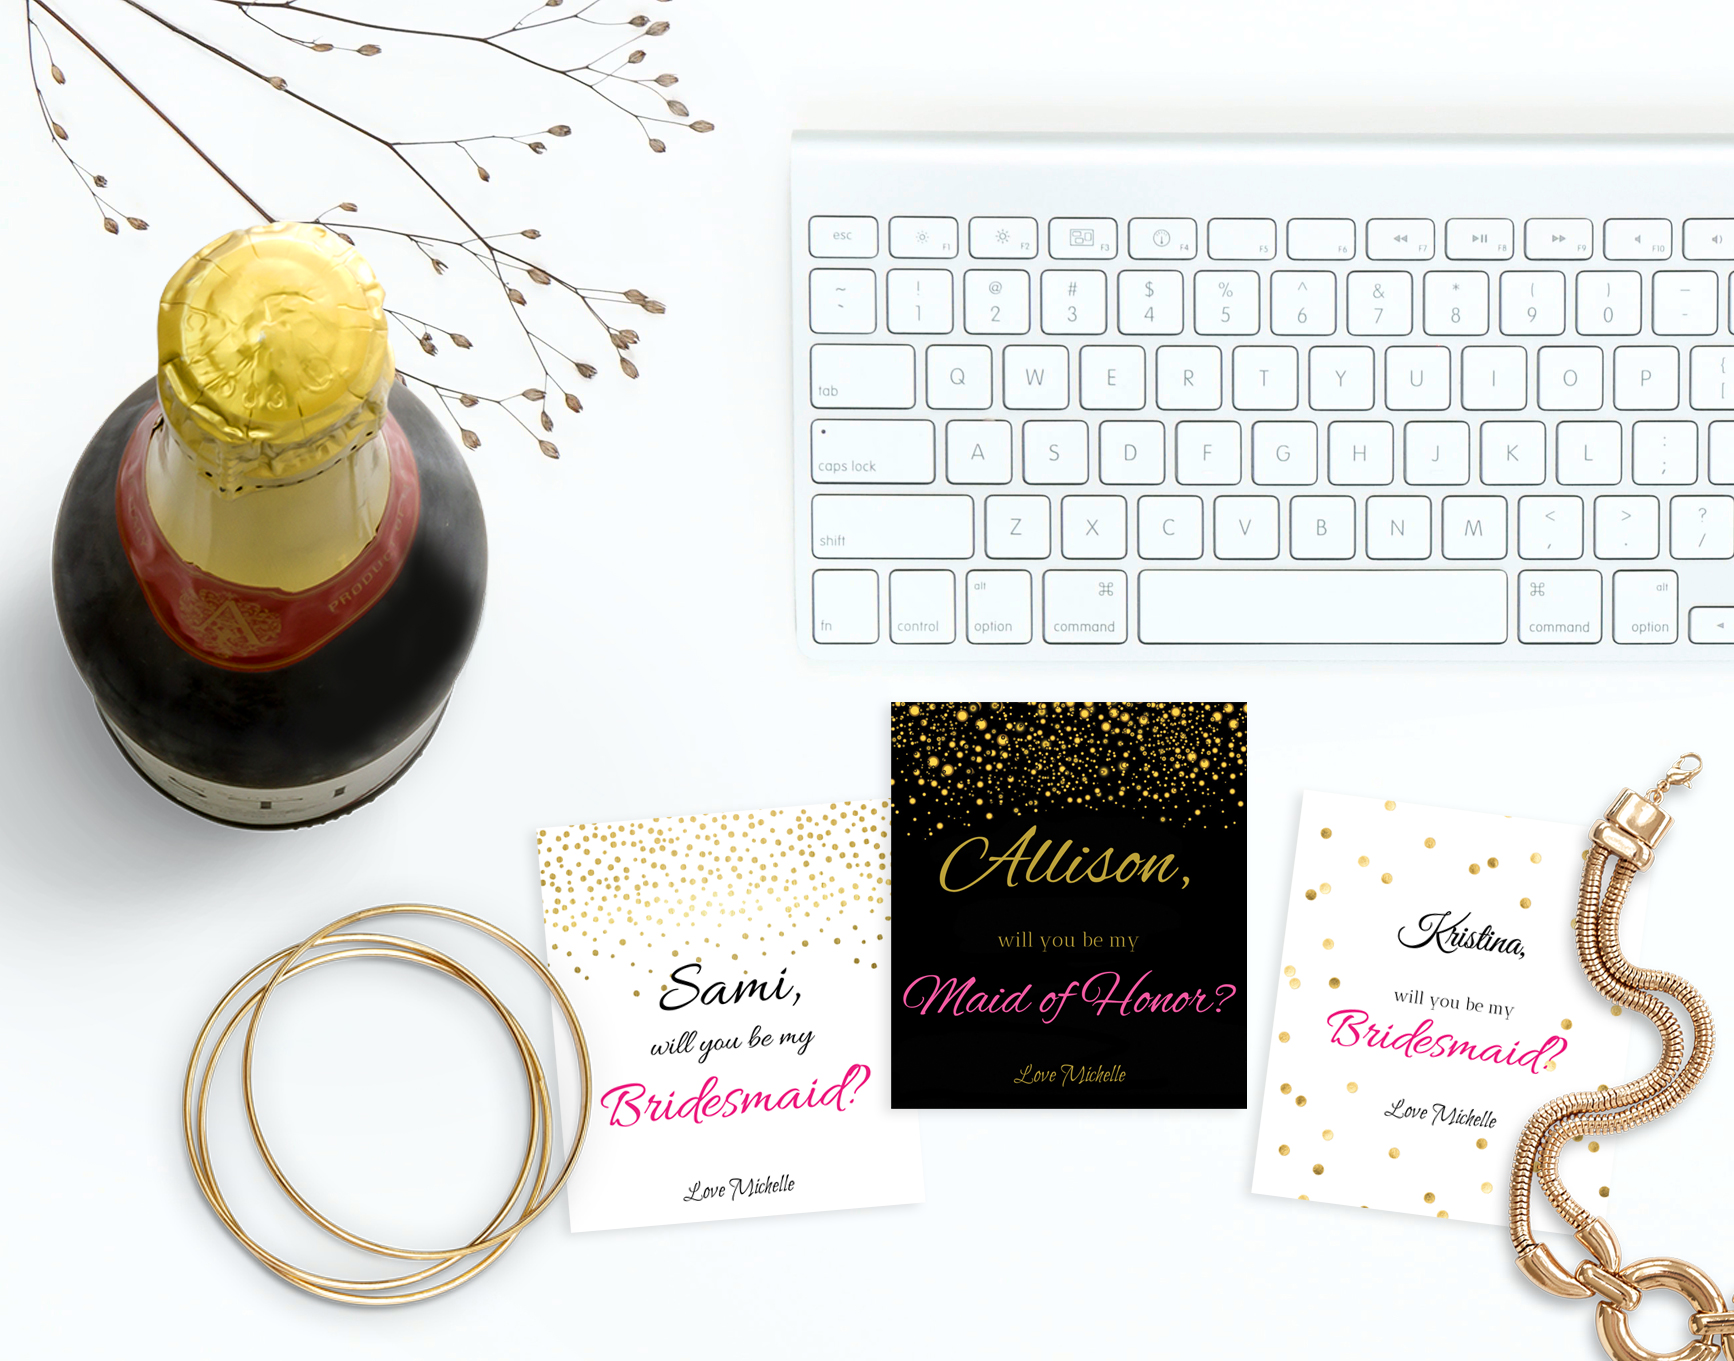 Champagne label for asking your bridesmaid to be in your wedding